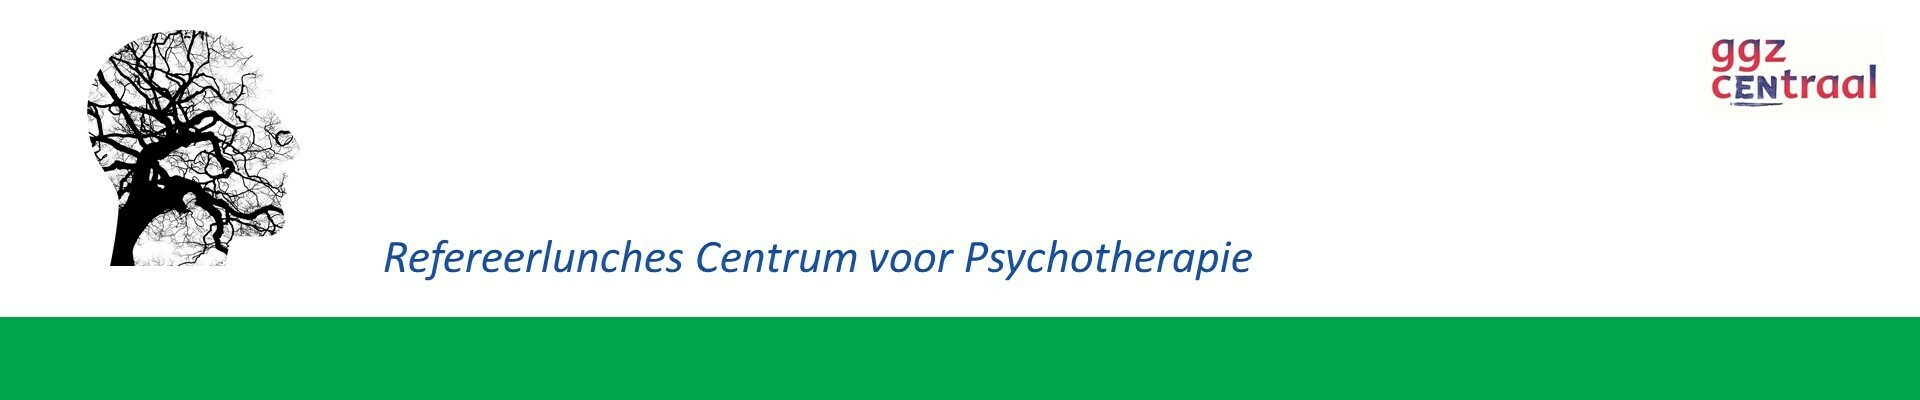 Refereerlunch Centrum voor Psychotherapie 7 juli